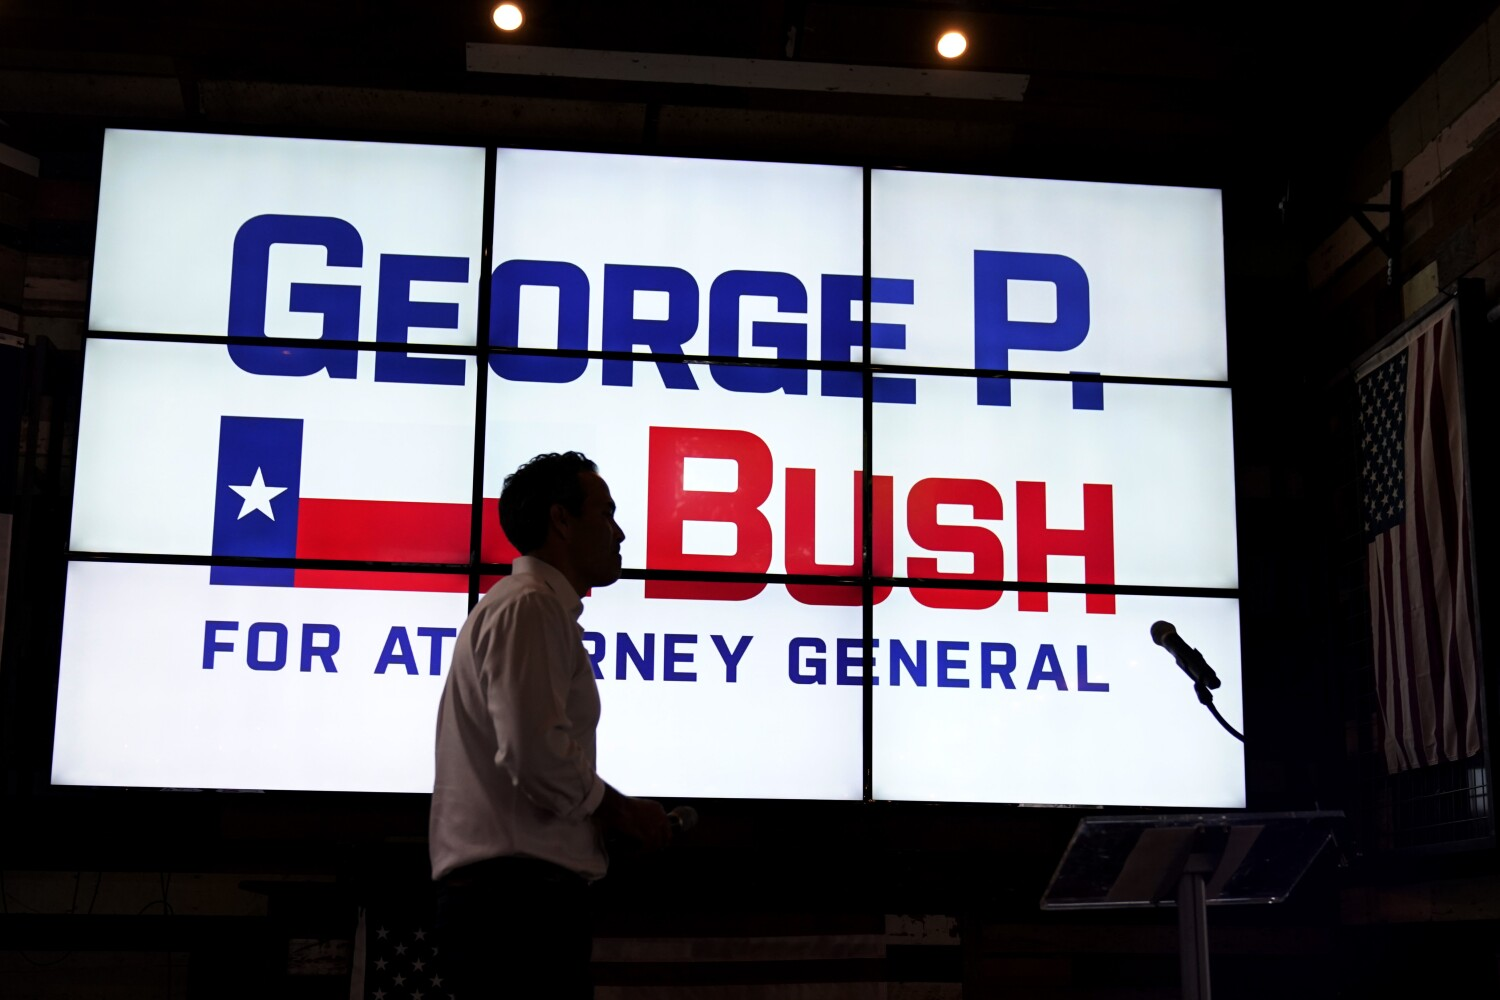 Column: Embracing Trump: An ambitious Bush son plays up ties to man who gleefully belittled his father